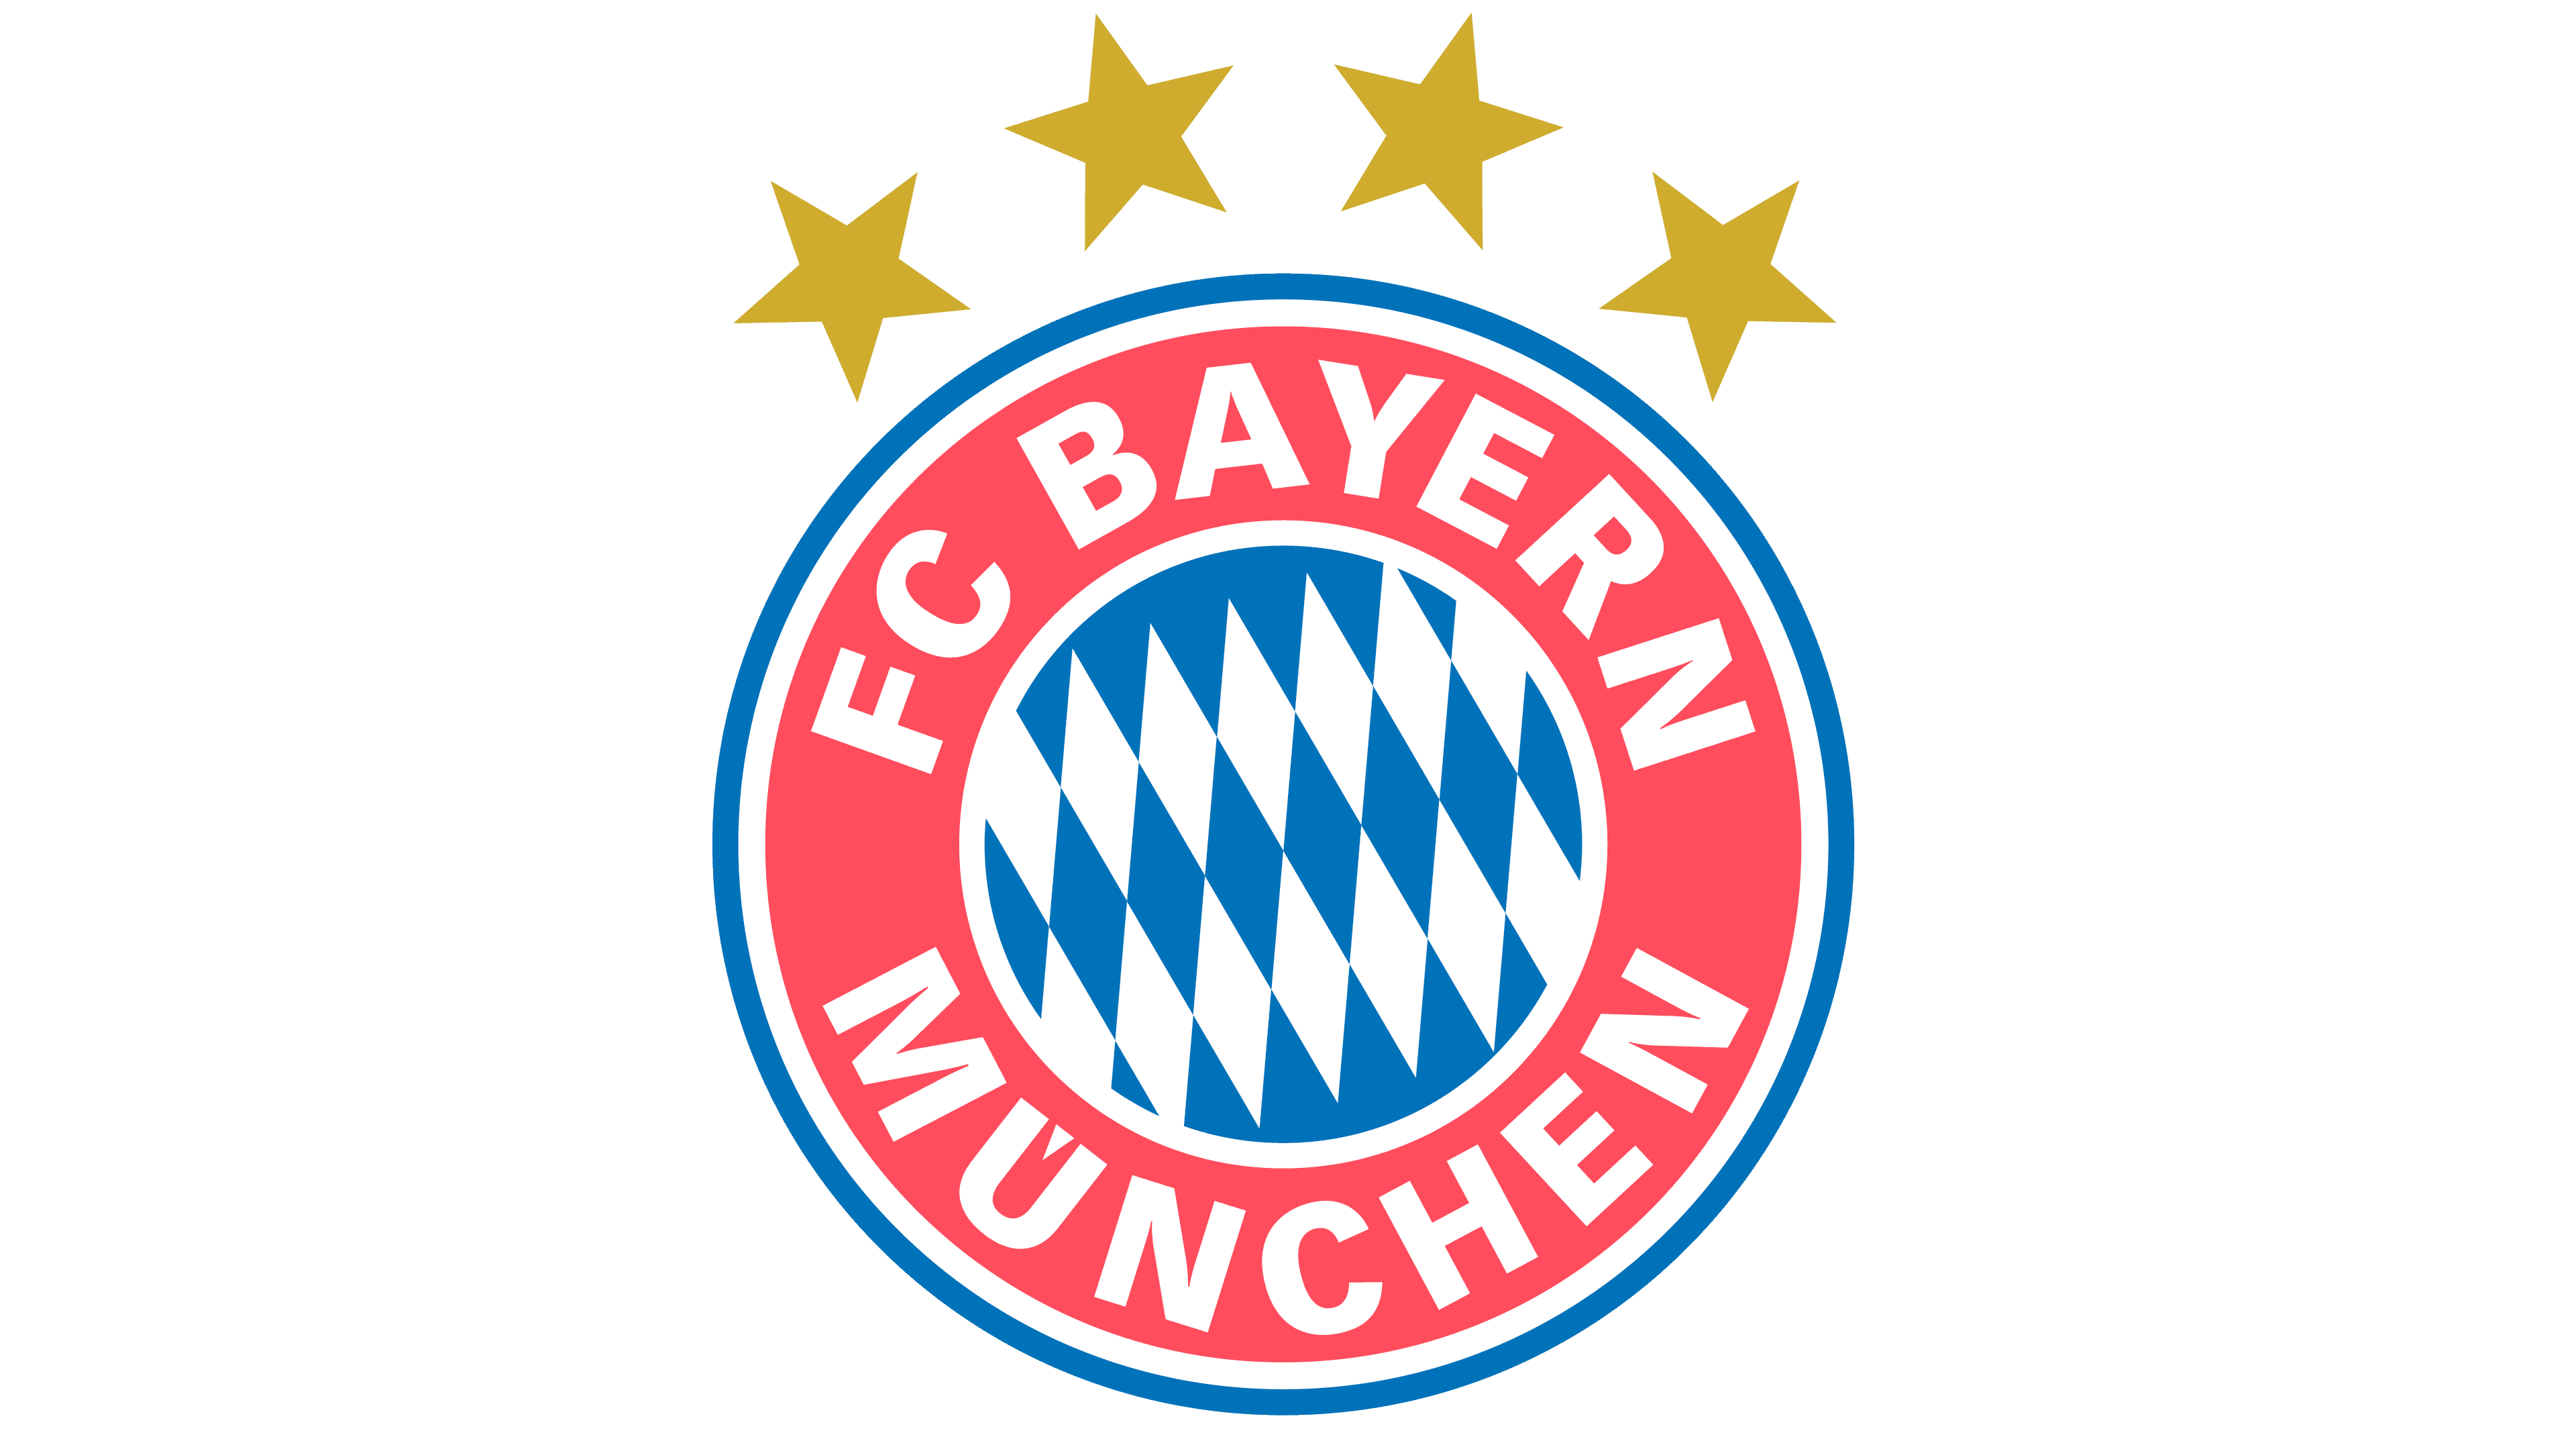 Fc Bayern Munchen Logo The Most Famous Brands And Company Logos In The World